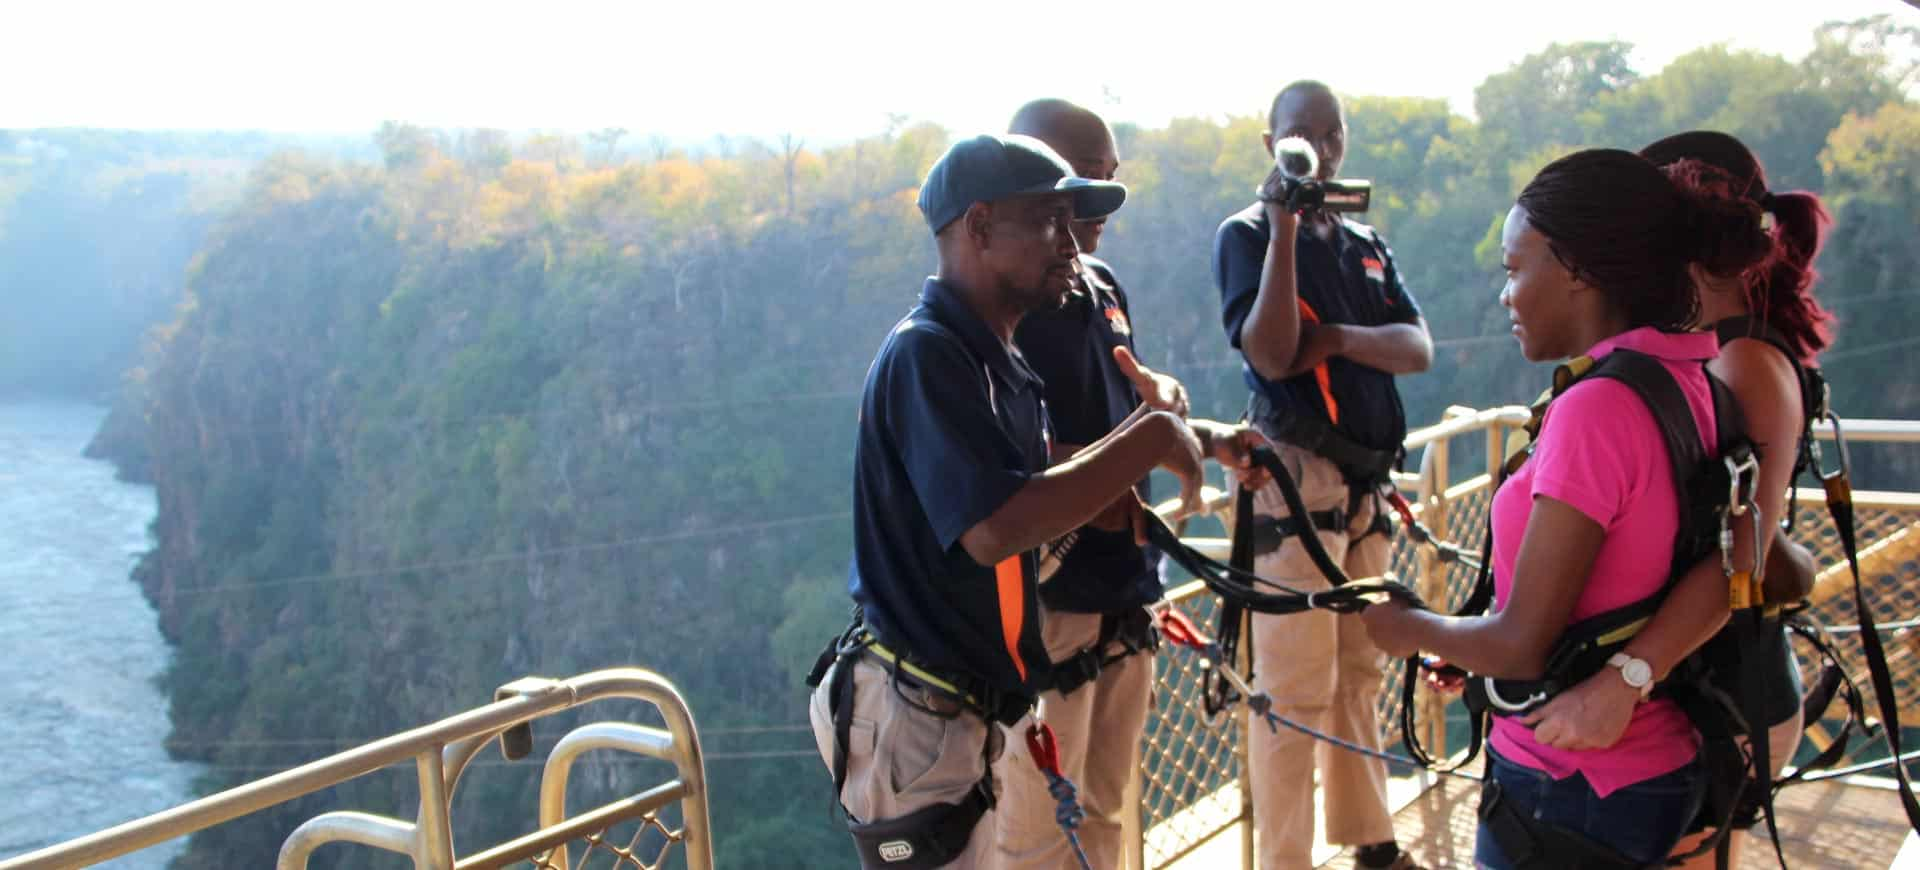 Bridge Swing Vic Falls